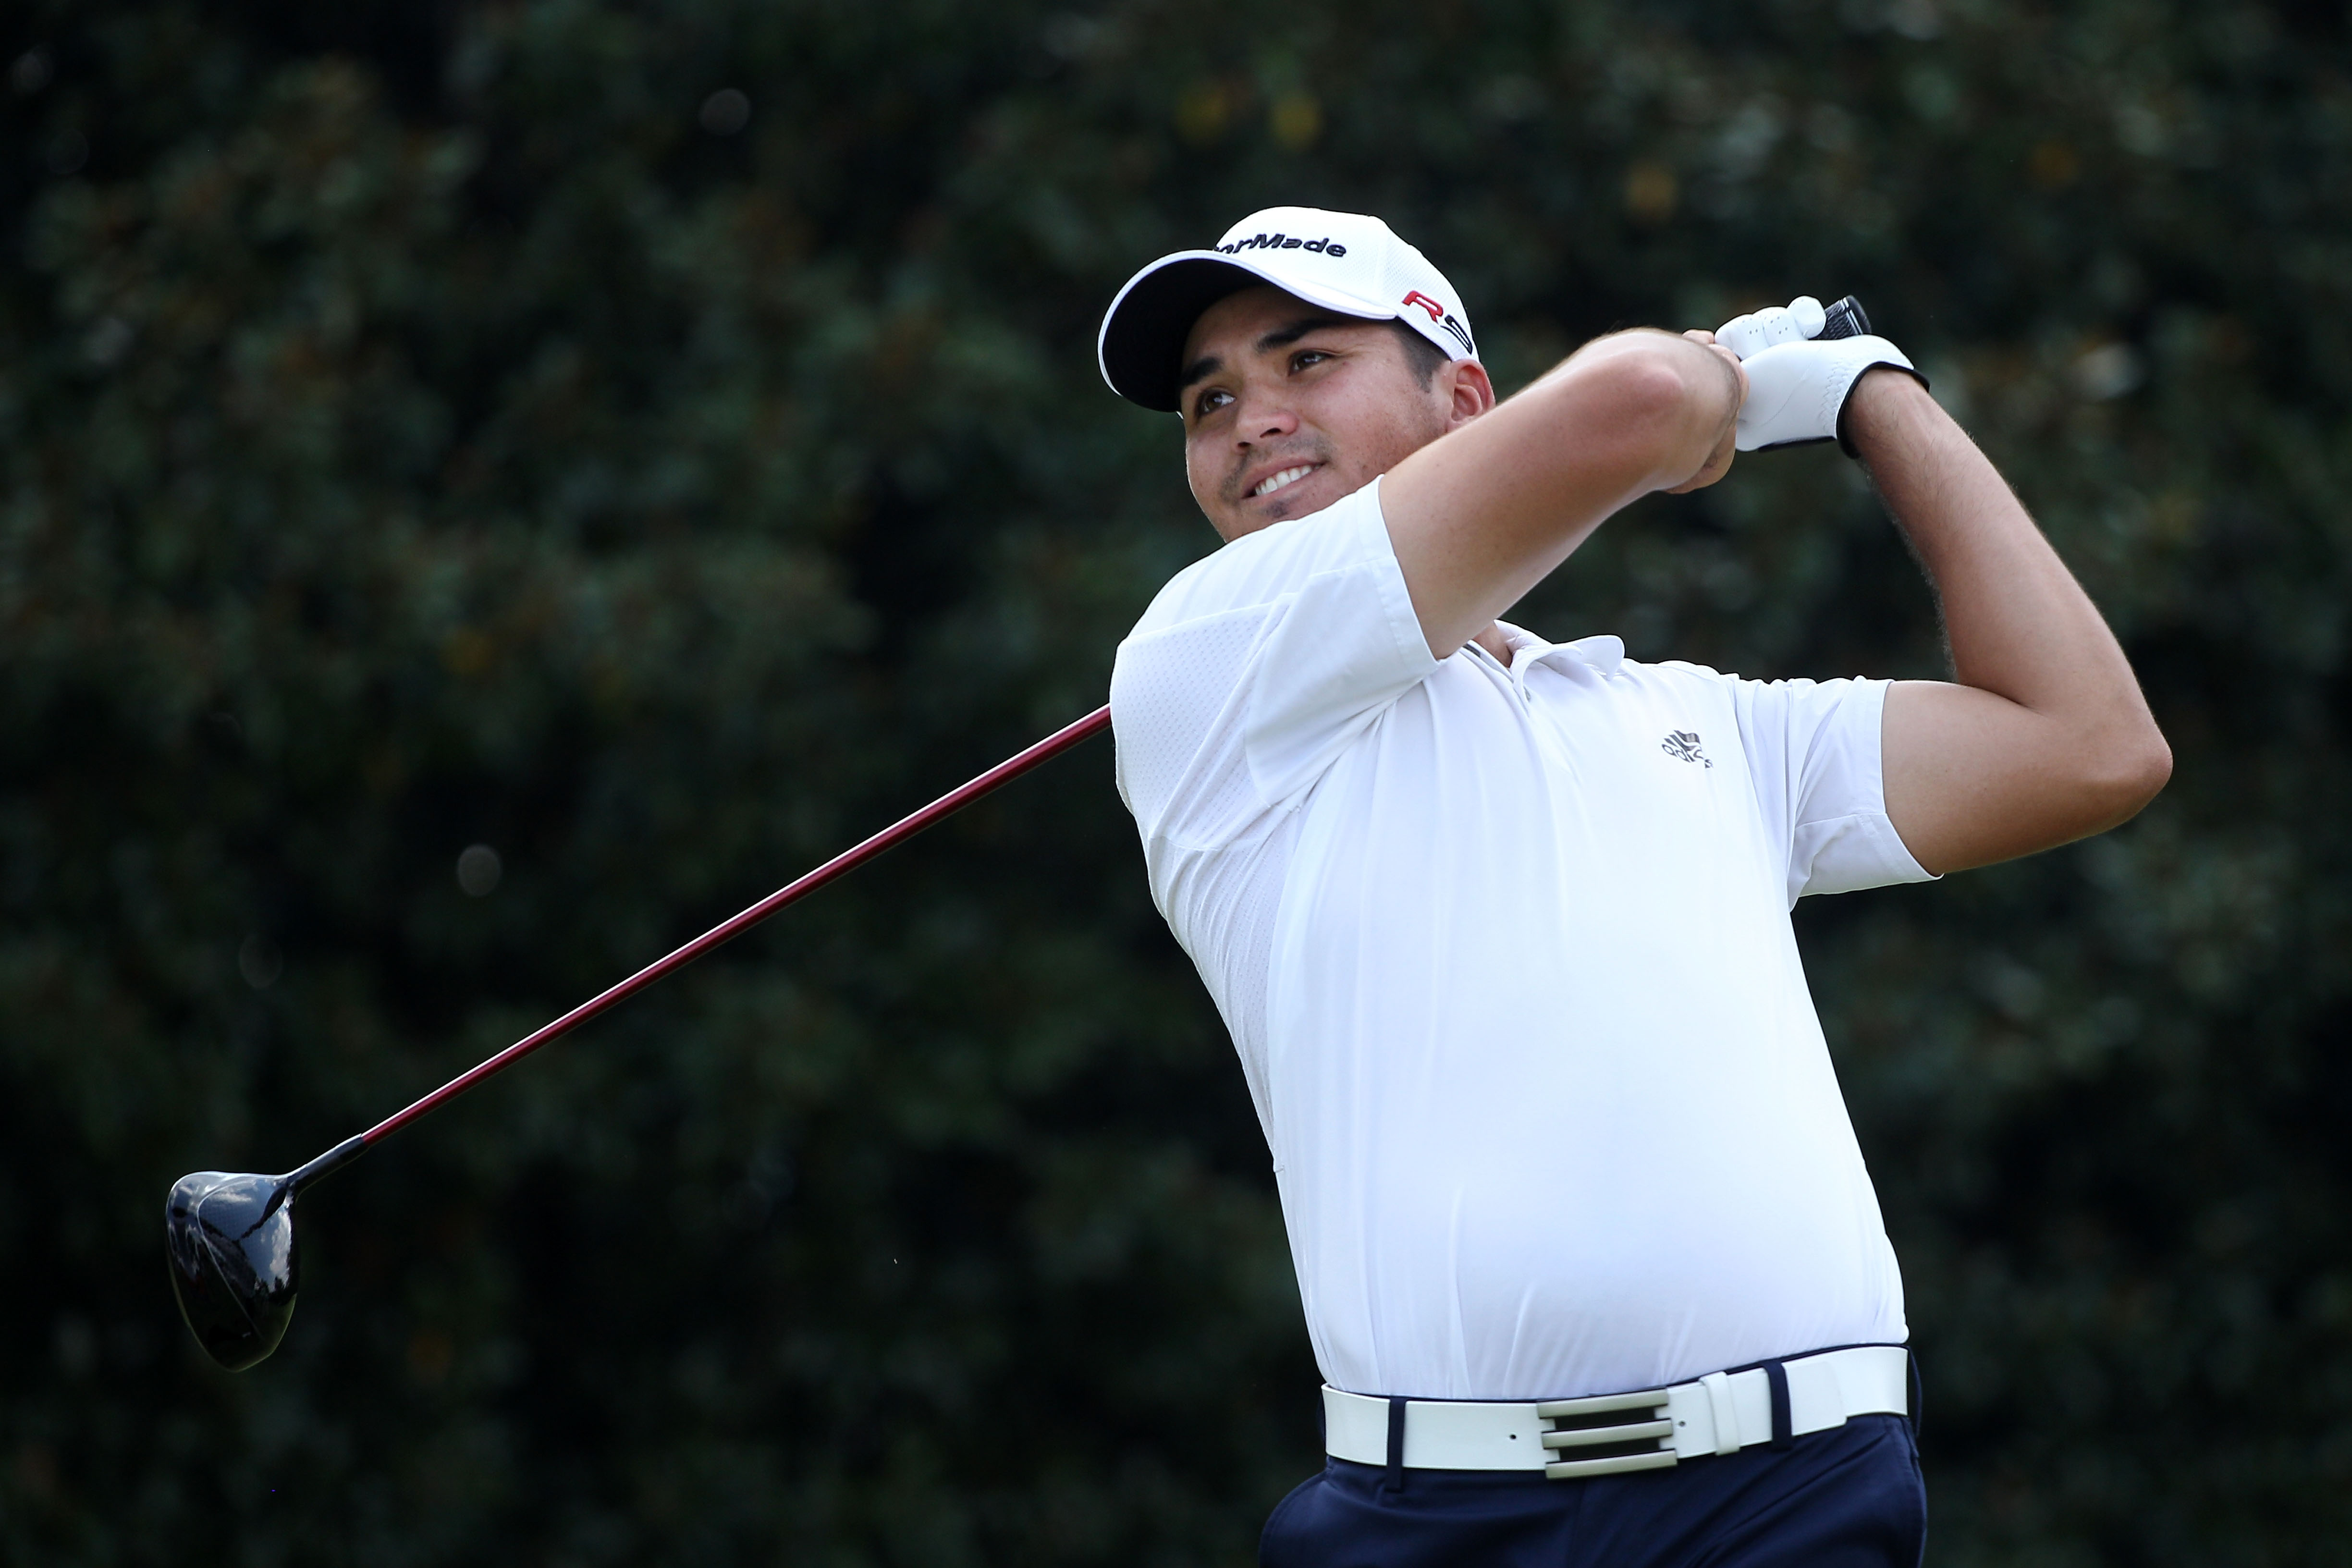 ATLANTA - SEPTEMBER 23:  Jason Day of Australia hits his tee shot on the fifth hole during the first round of THE TOUR Championship presented by Coca-Cola at East Lake Golf Club on September 23, 2010 in Atlanta, Georgia.  (Photo by Scott Halleran/Getty Im